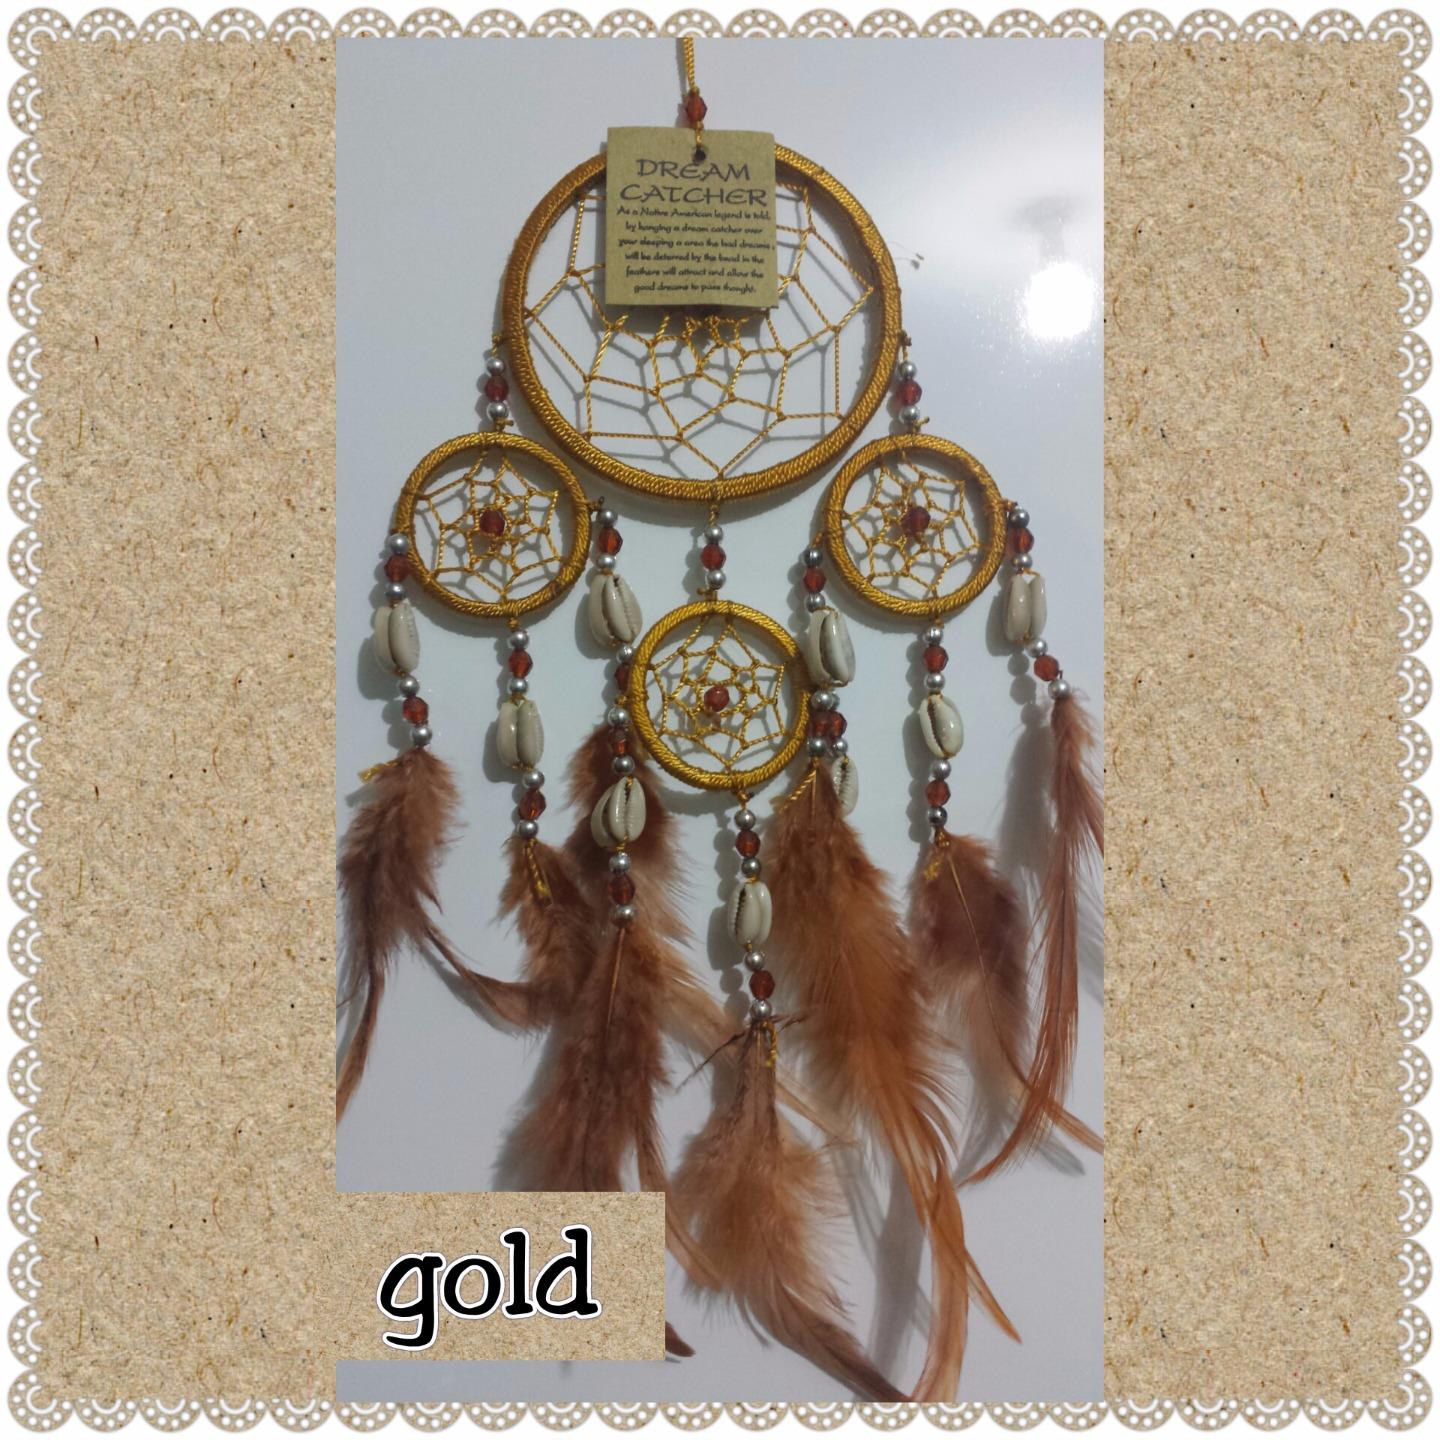 Dream catcher  40cm overall drop with shells DCAP5A